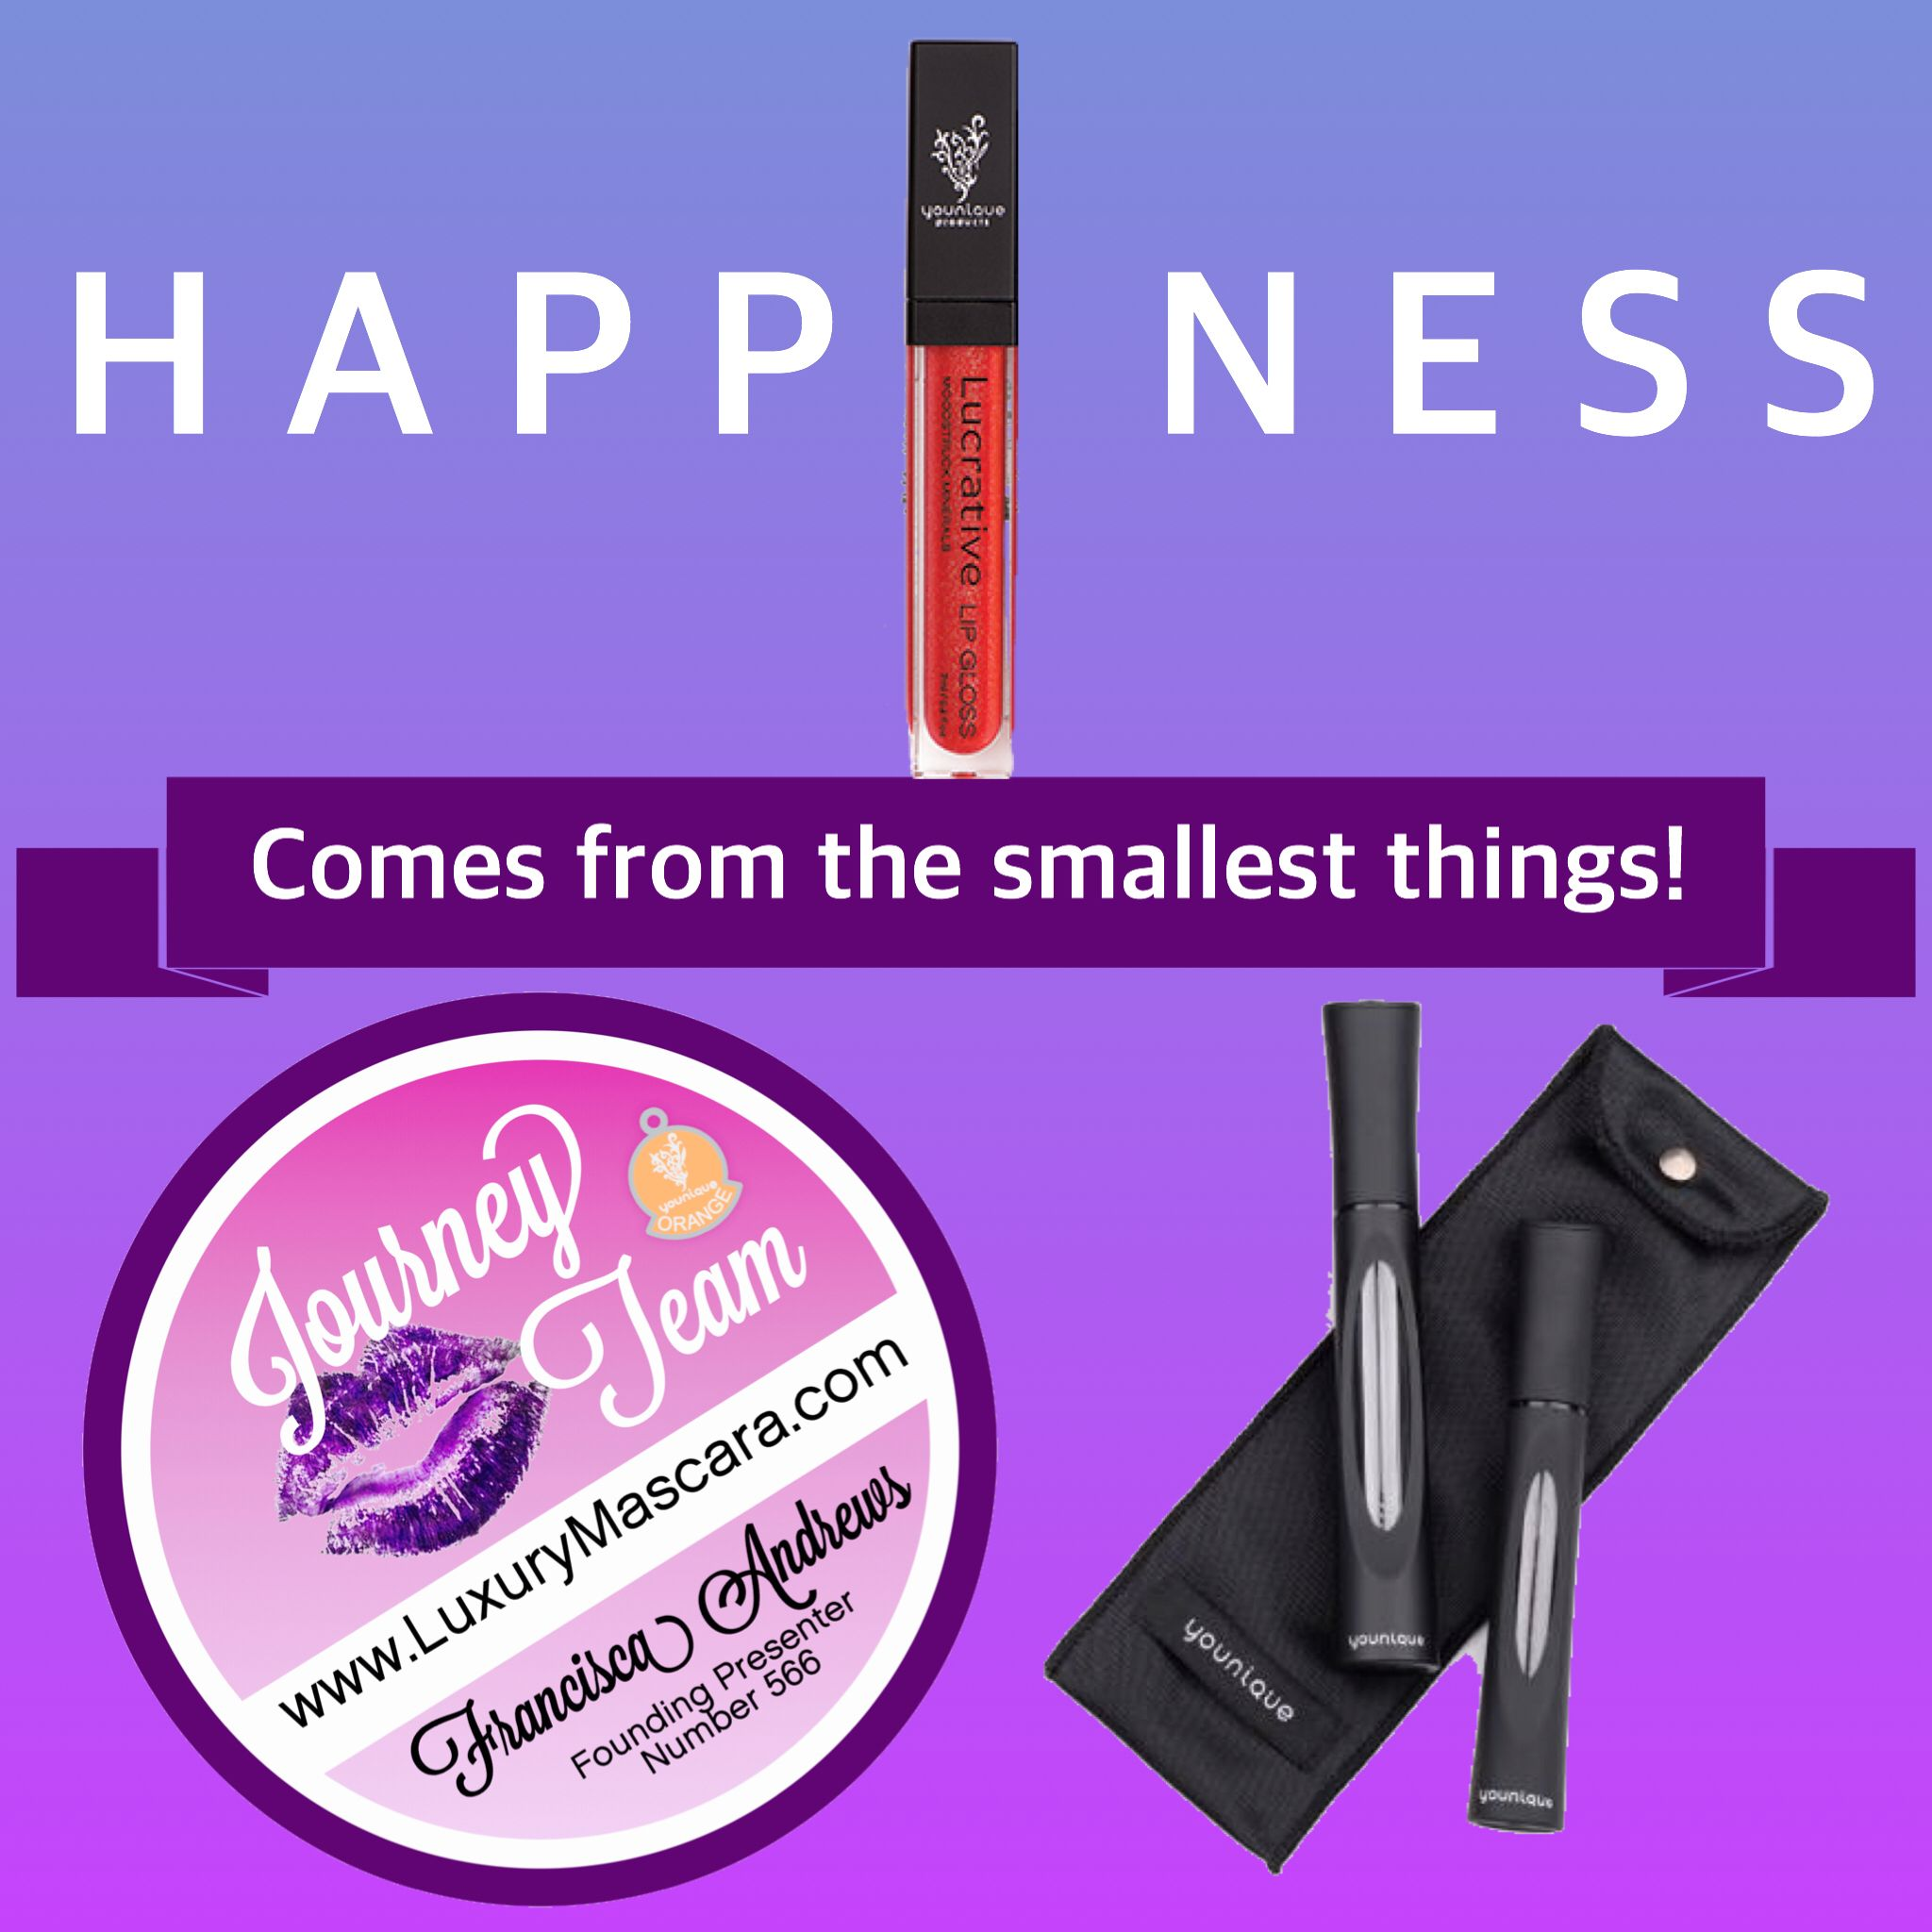 Have I mentioned how happy I am with our #Lucrative #lipgloss? Lips and lashes will complete your look every time! #LuxuryMascara #makeuplover #makeupaddict #Entrepreneur #Uplift #Empower #Motivate #UK #usa #Canada #Australia #NewZealand #France #Mexico #Germany #Deutschland #JourneyTeam #makeup #makeupaddict #makeupjunkie www.LuxuryMascara.com